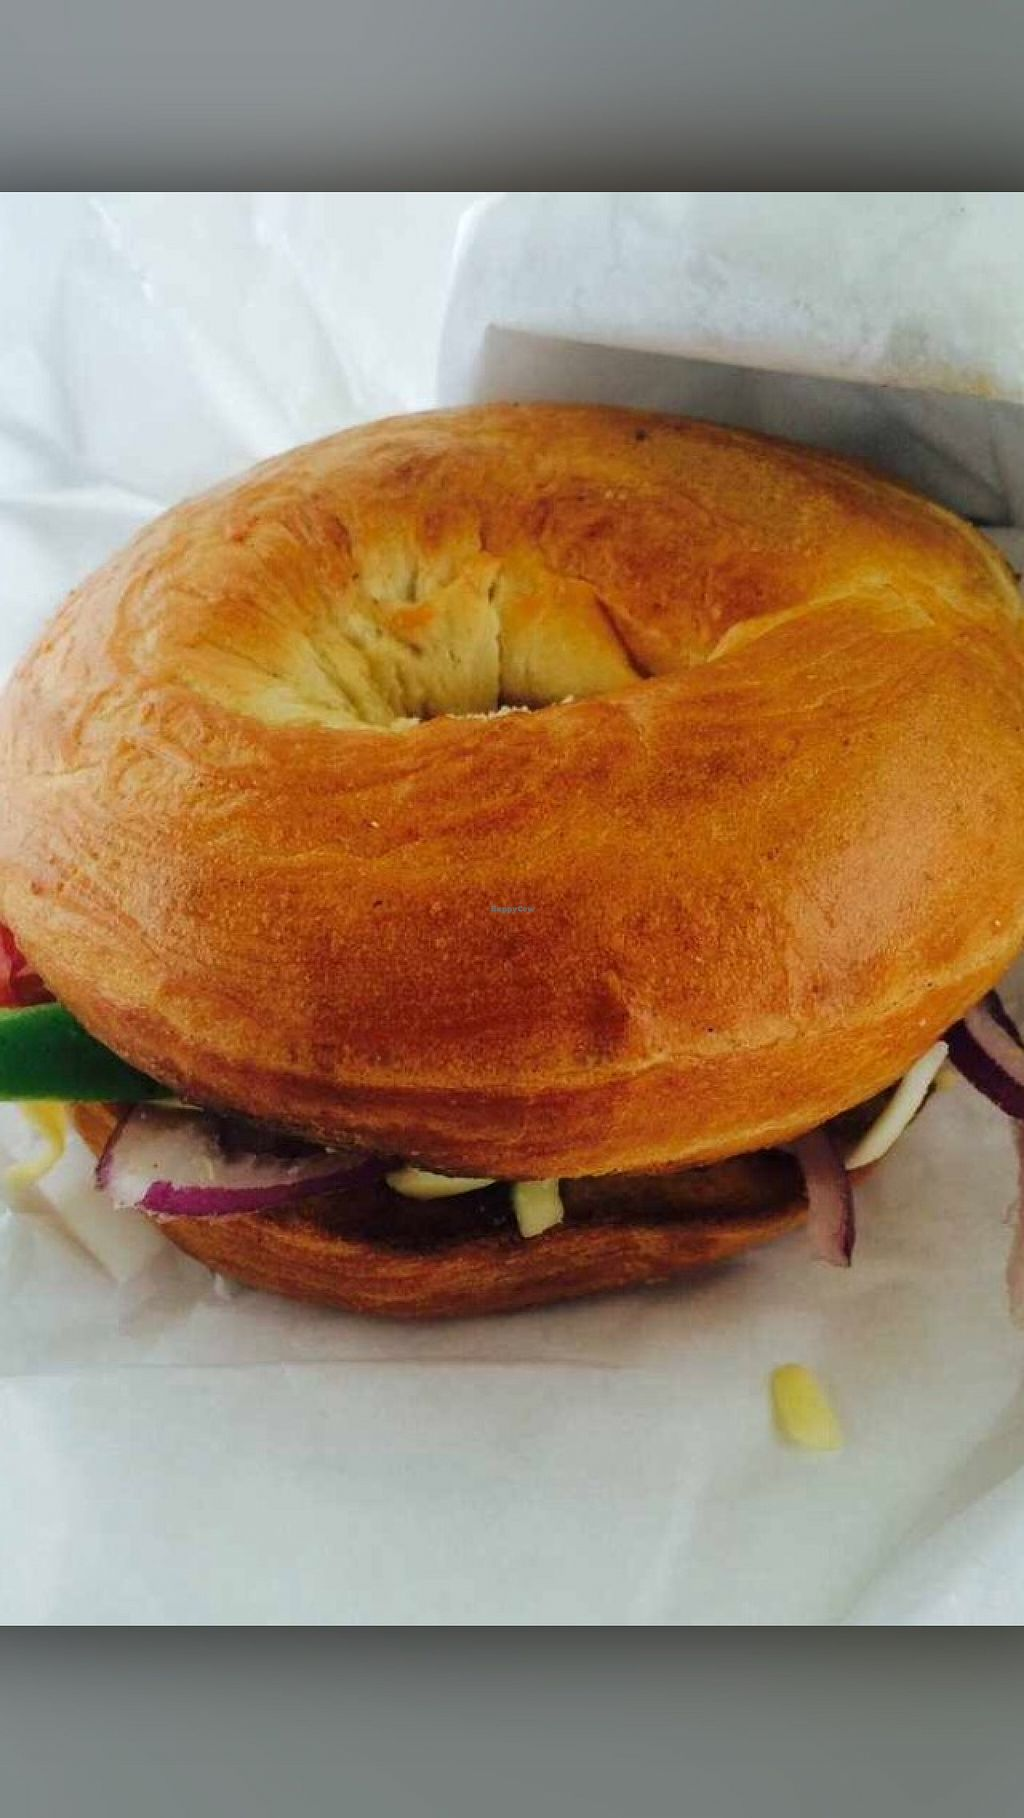 """Photo of Bagel Bean  by <a href=""""/members/profile/CiaraSlevin"""">CiaraSlevin</a> <br/>The veggie bagel (take away) <br/> August 15, 2015  - <a href='/contact/abuse/image/62038/113711'>Report</a>"""